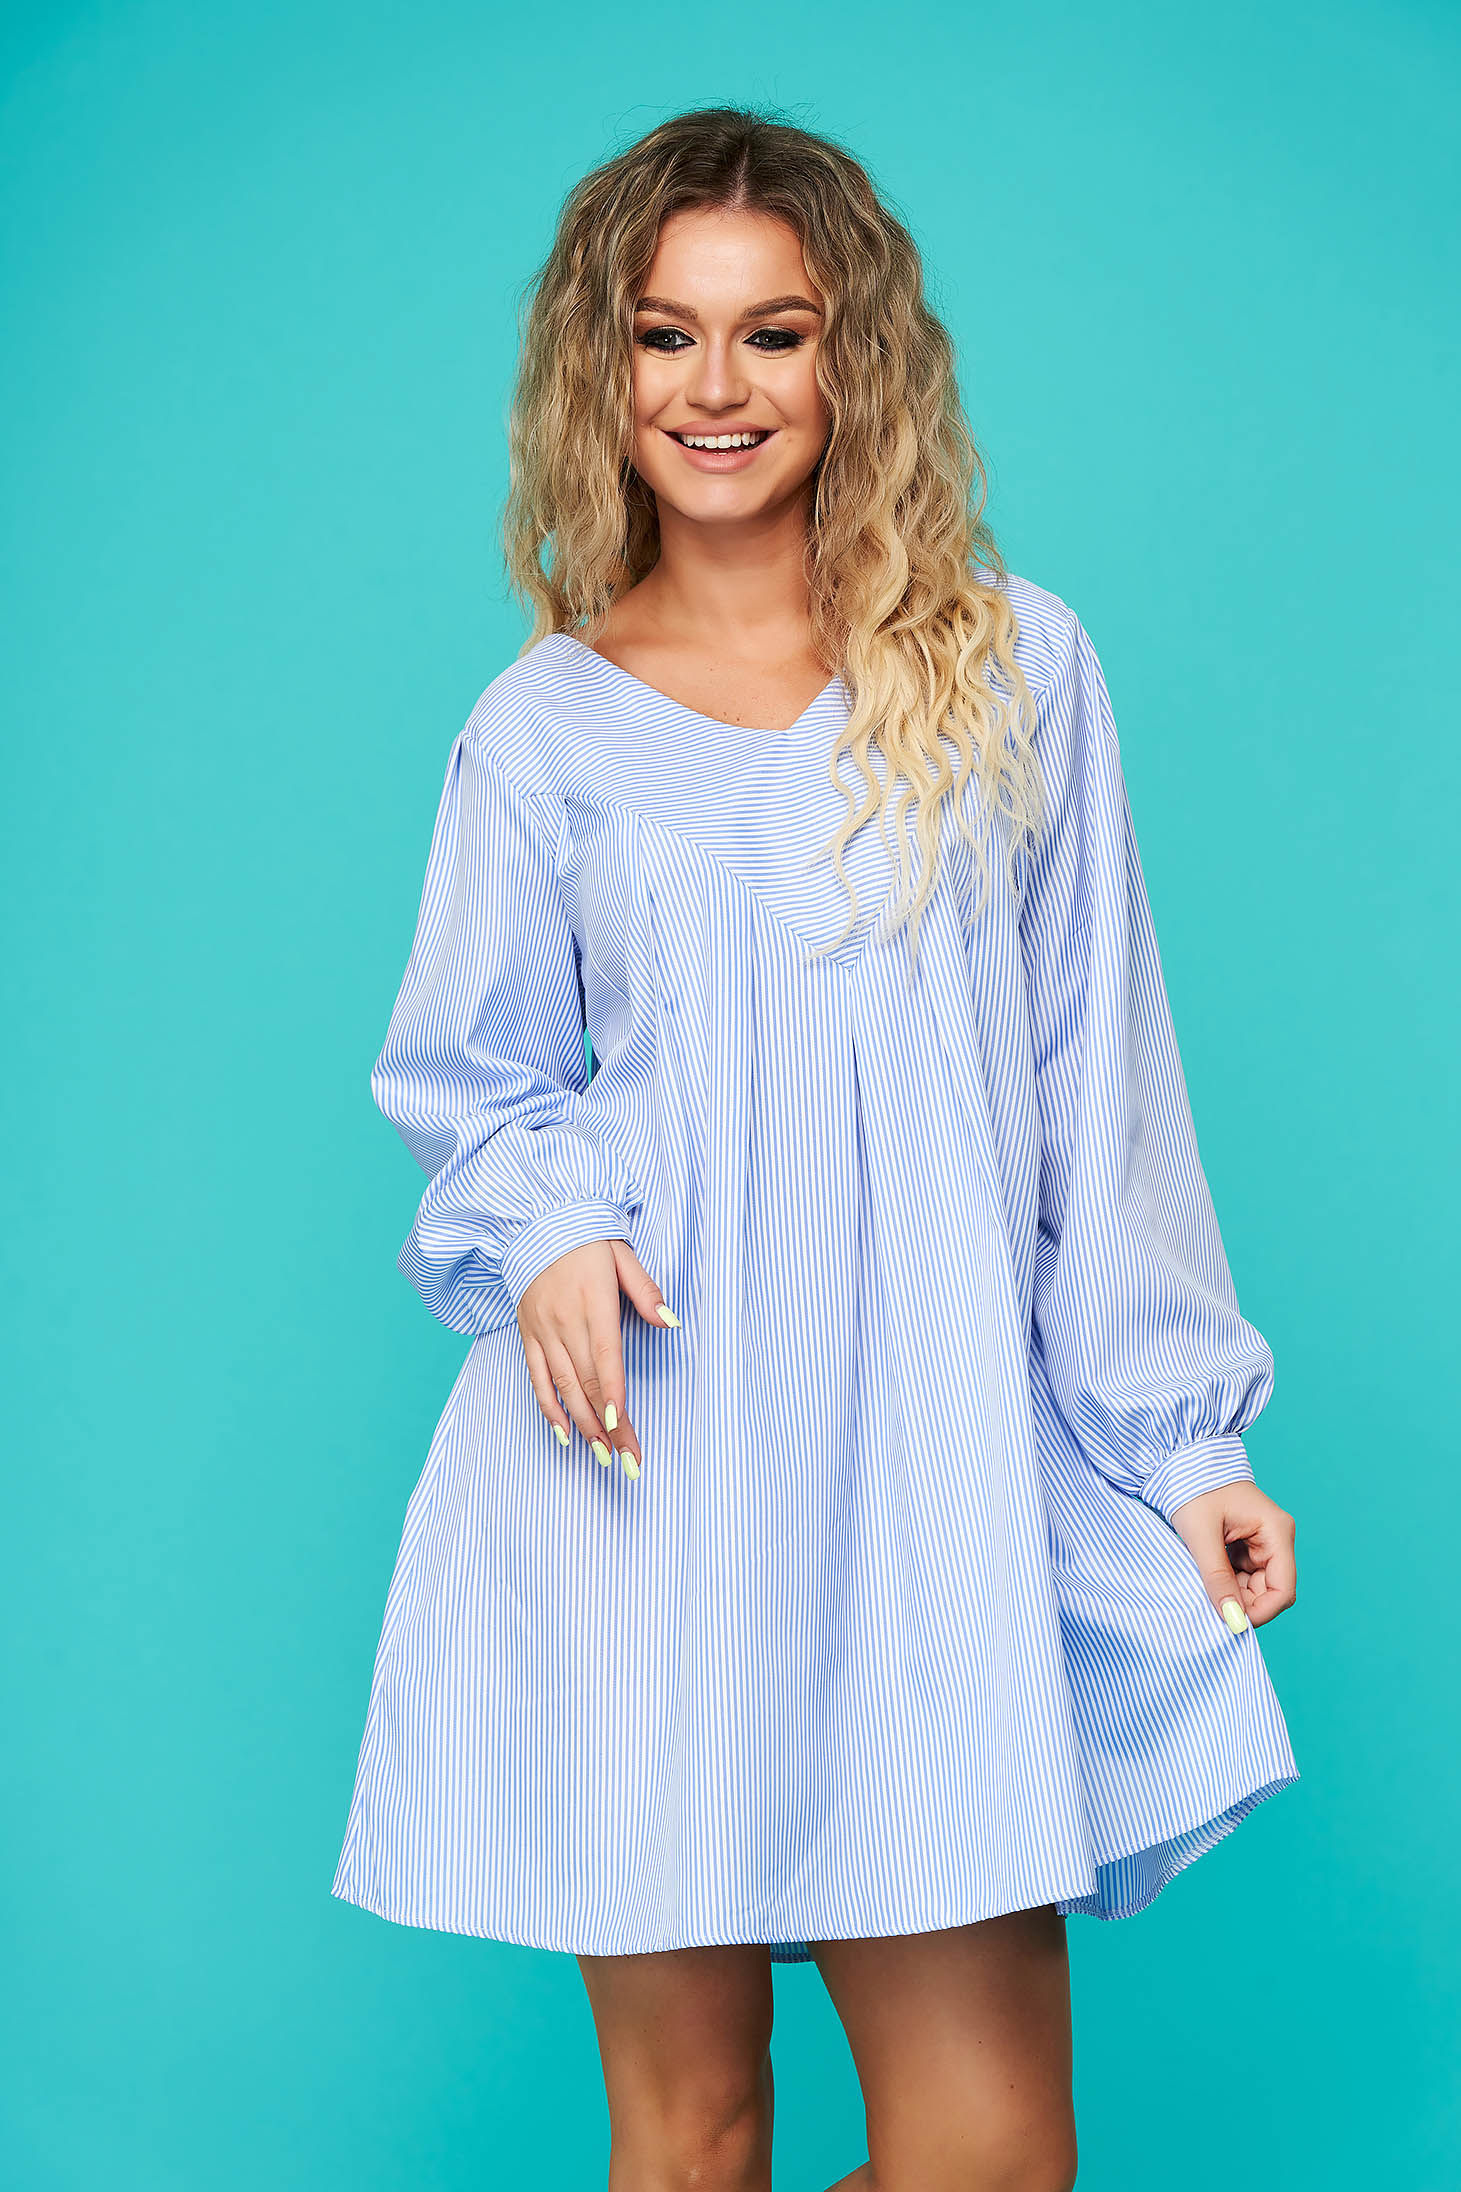 Blue dress daily short cut flared with v-neckline nonelastic cotton